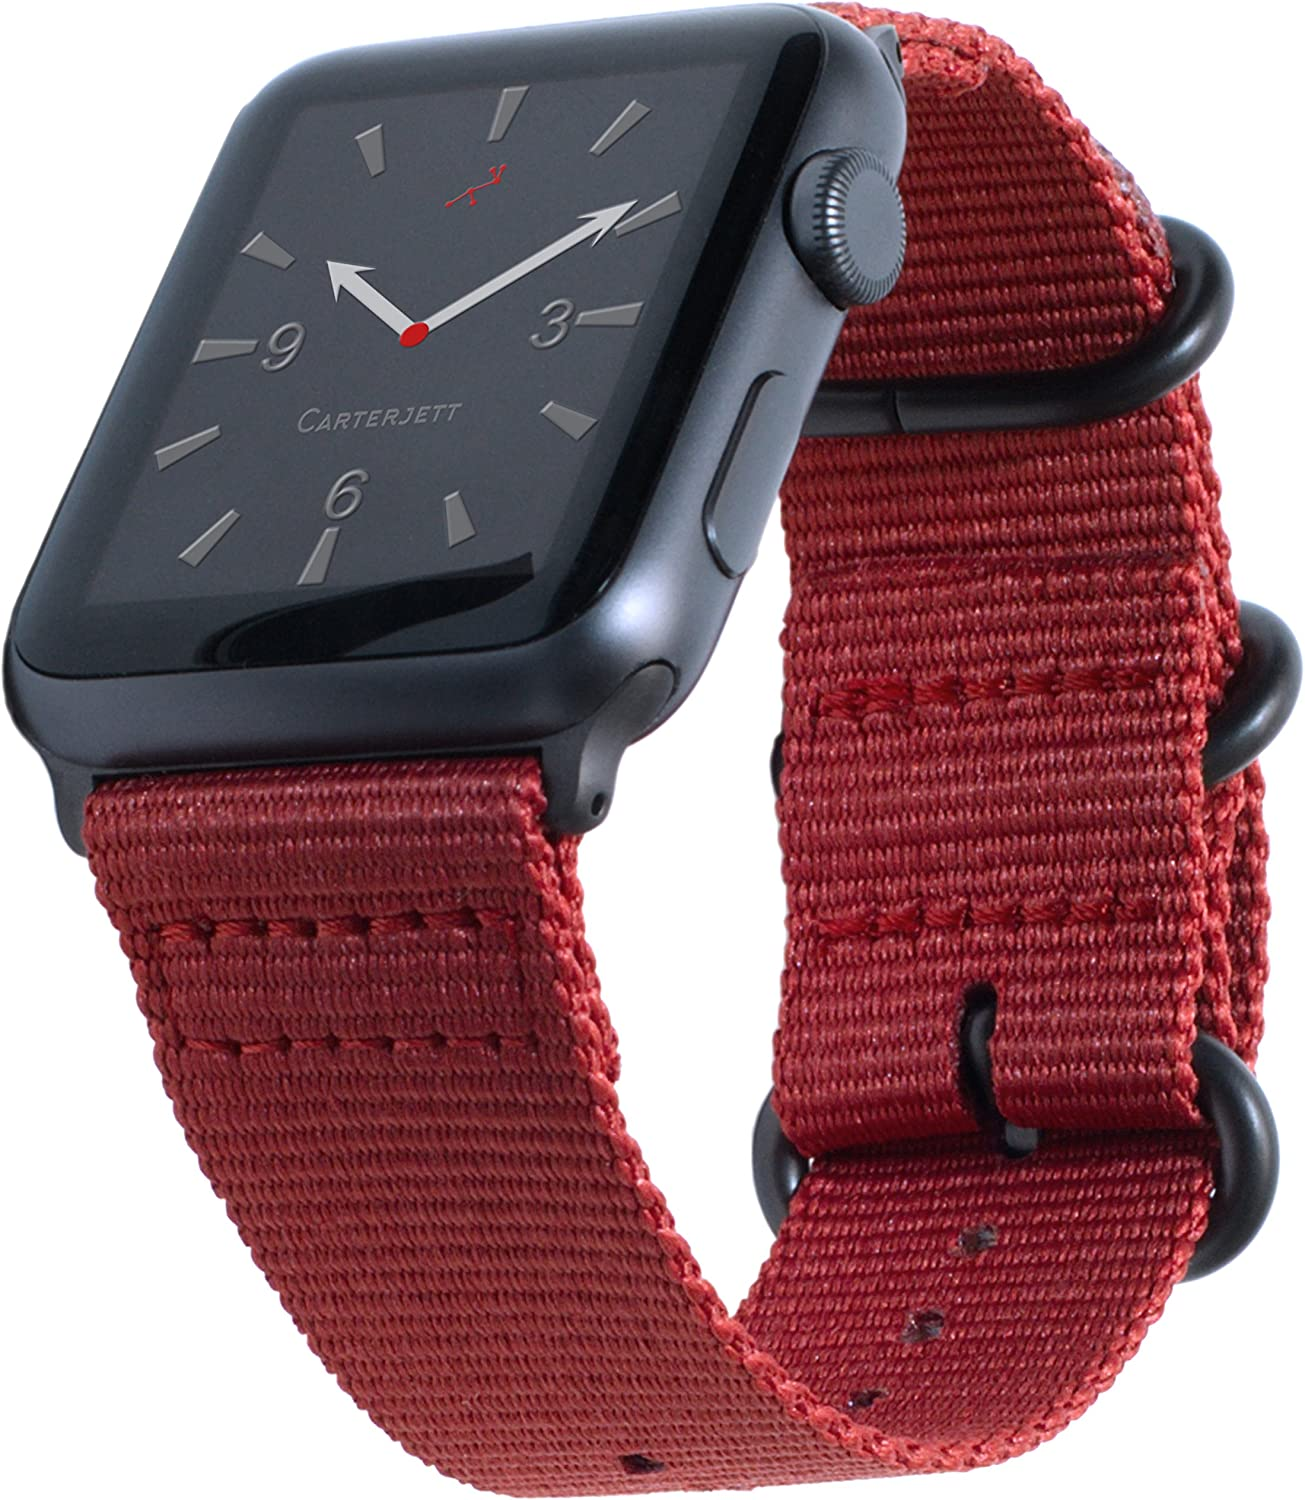 Carterjett Compatible with Apple Watch Band Red 42mm 44mm Woven Nylon Replacement iWatch Band Canvas Strap Military Style Steel Clasp Adapters for New Series 5 Series 4 3 2 1 (42 44 S/M/L Red)